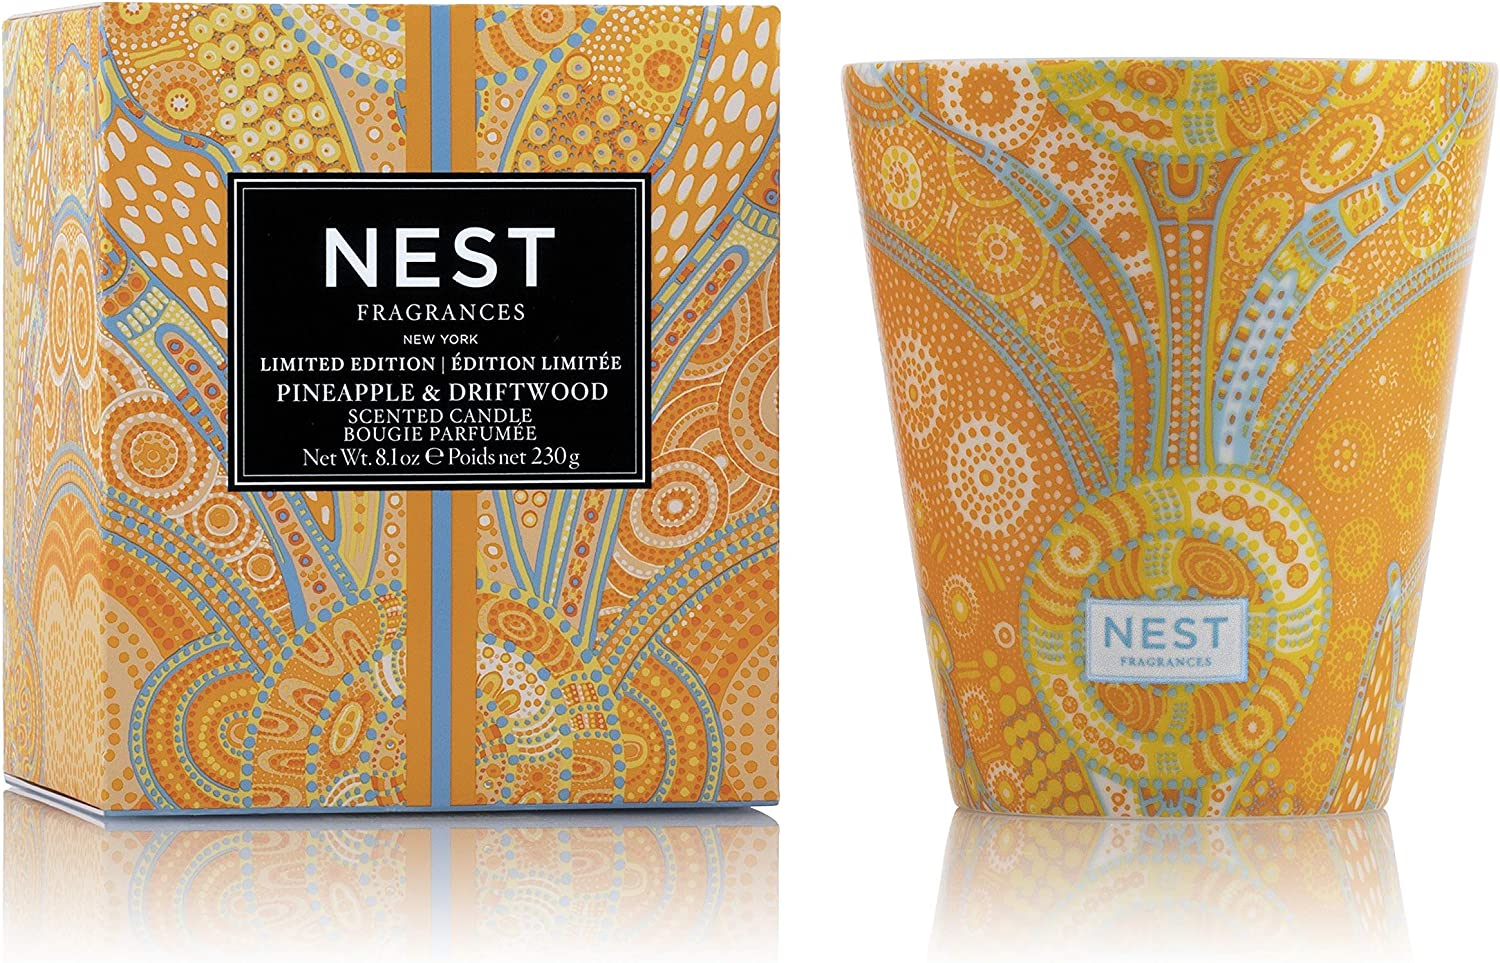 NEST Fragrances Pineapple & Driftwood Limited Edition Summer 'Scape Candle